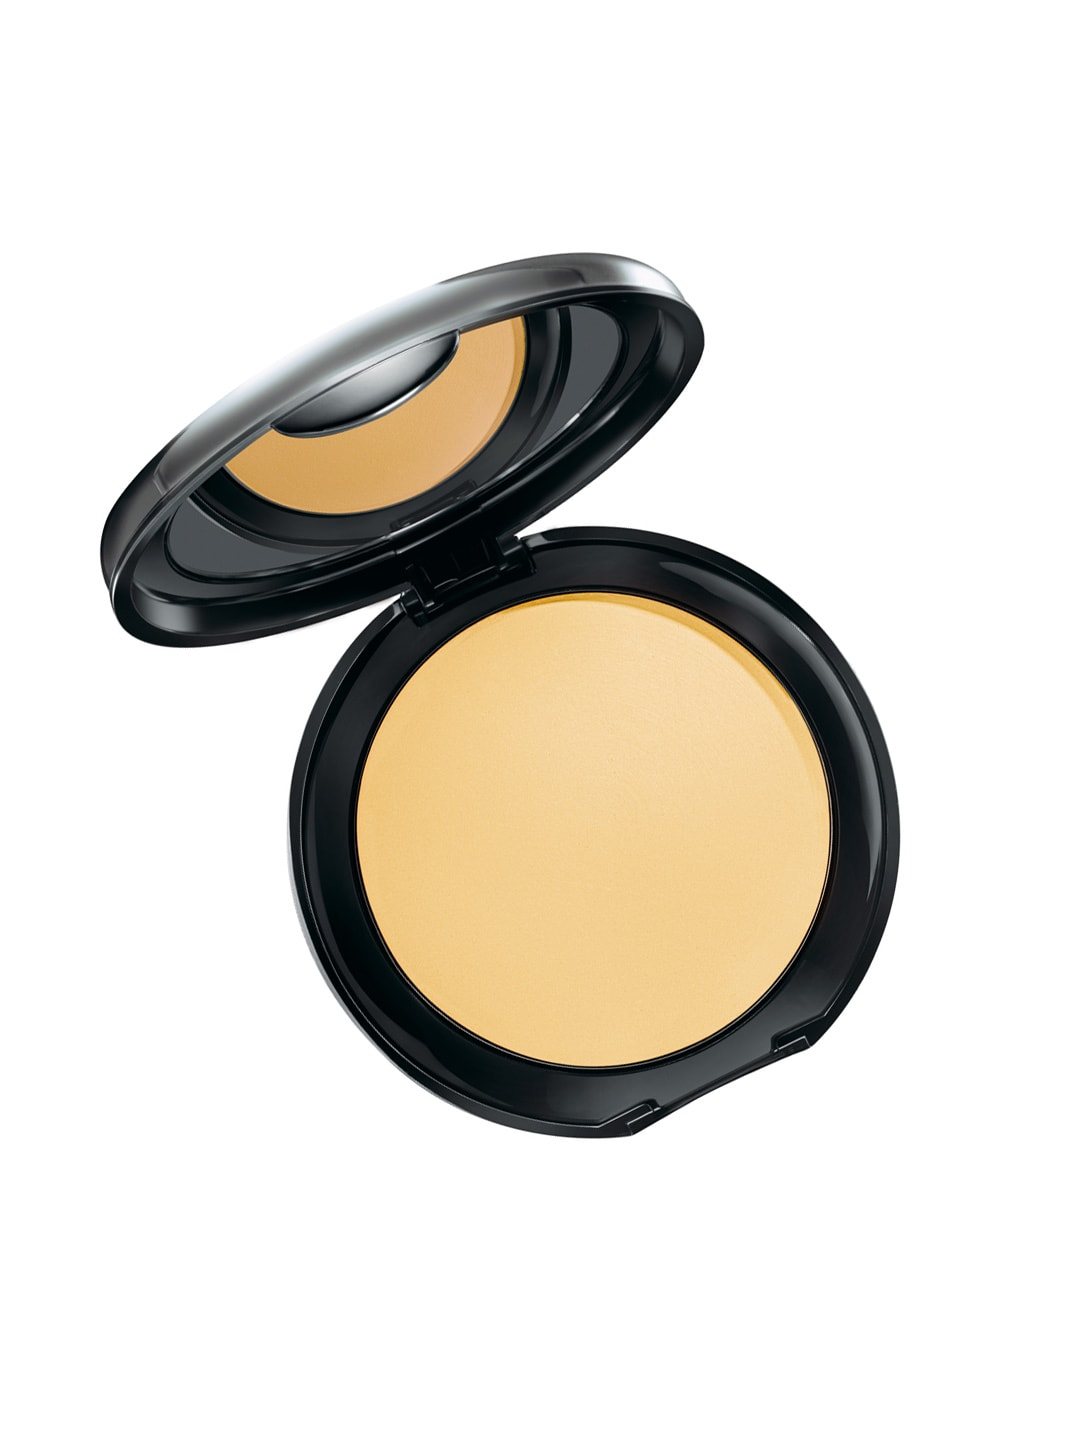 Lakme Absolute White Intense Wet & Dry Ivory Fair 01 Compact